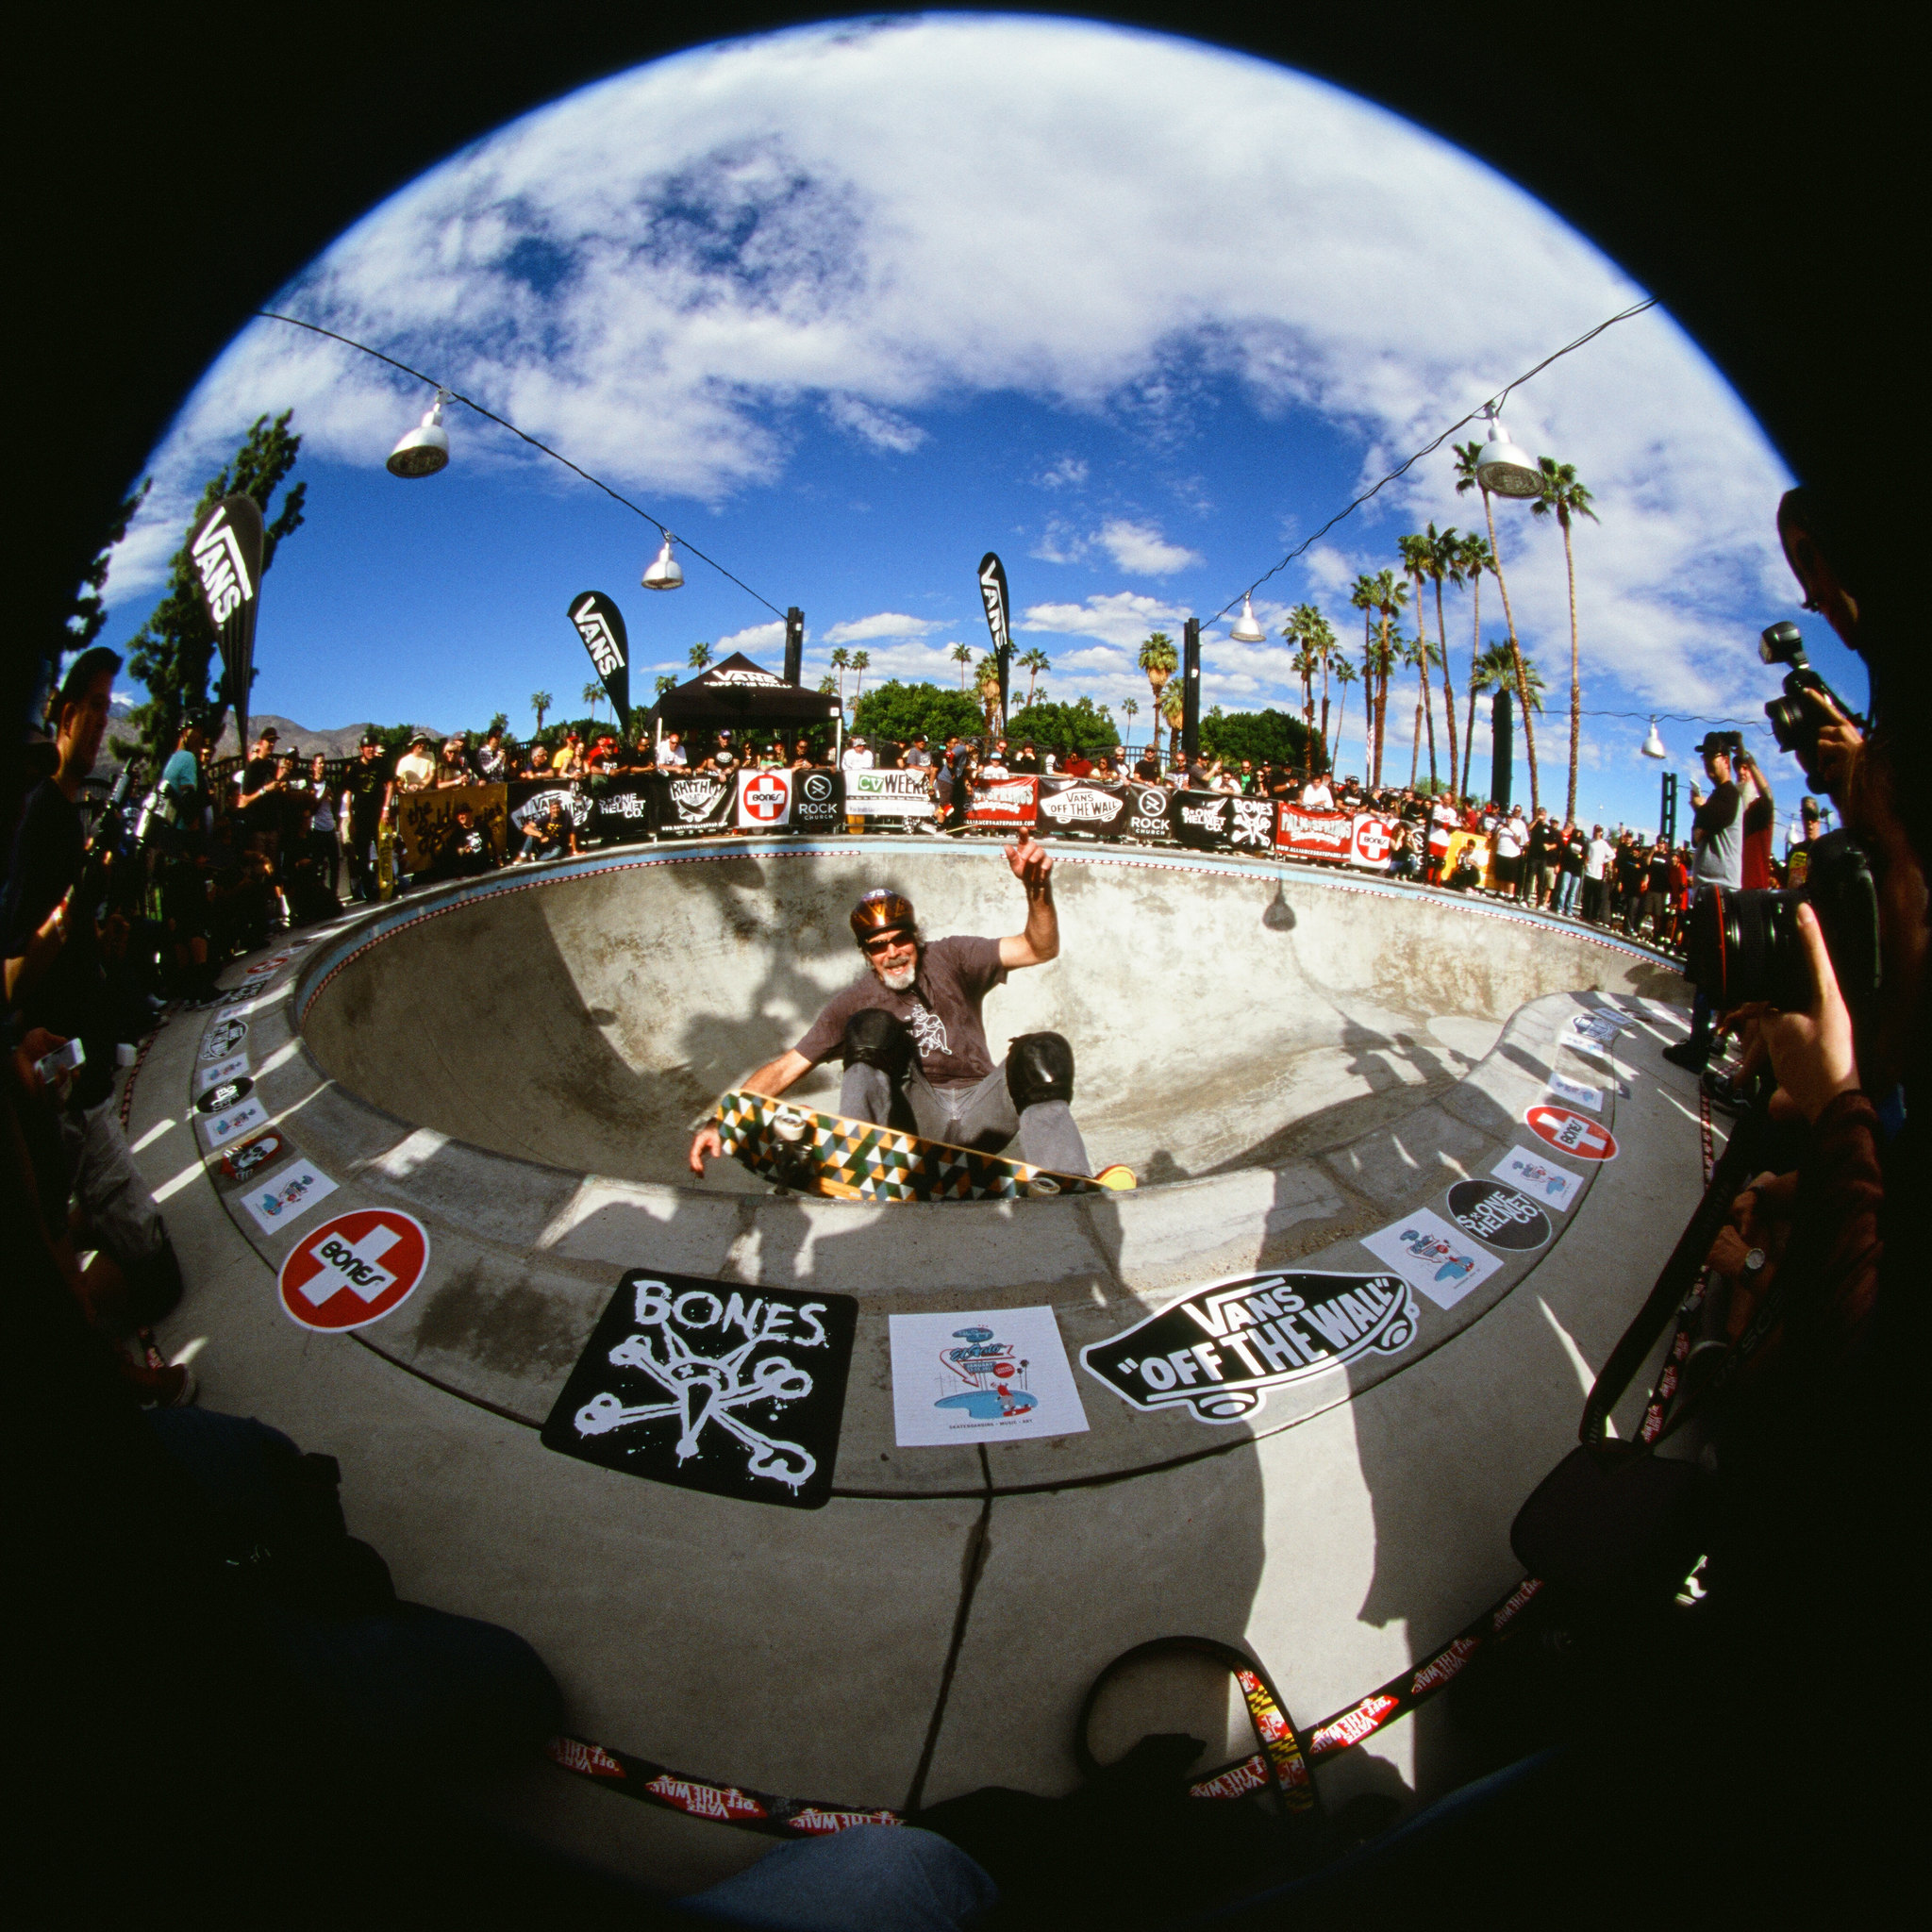 ElGatoClassic-photography-Skateboard-eddie elguera-Palmsprings-Analog-fisheye-joe-segre-12